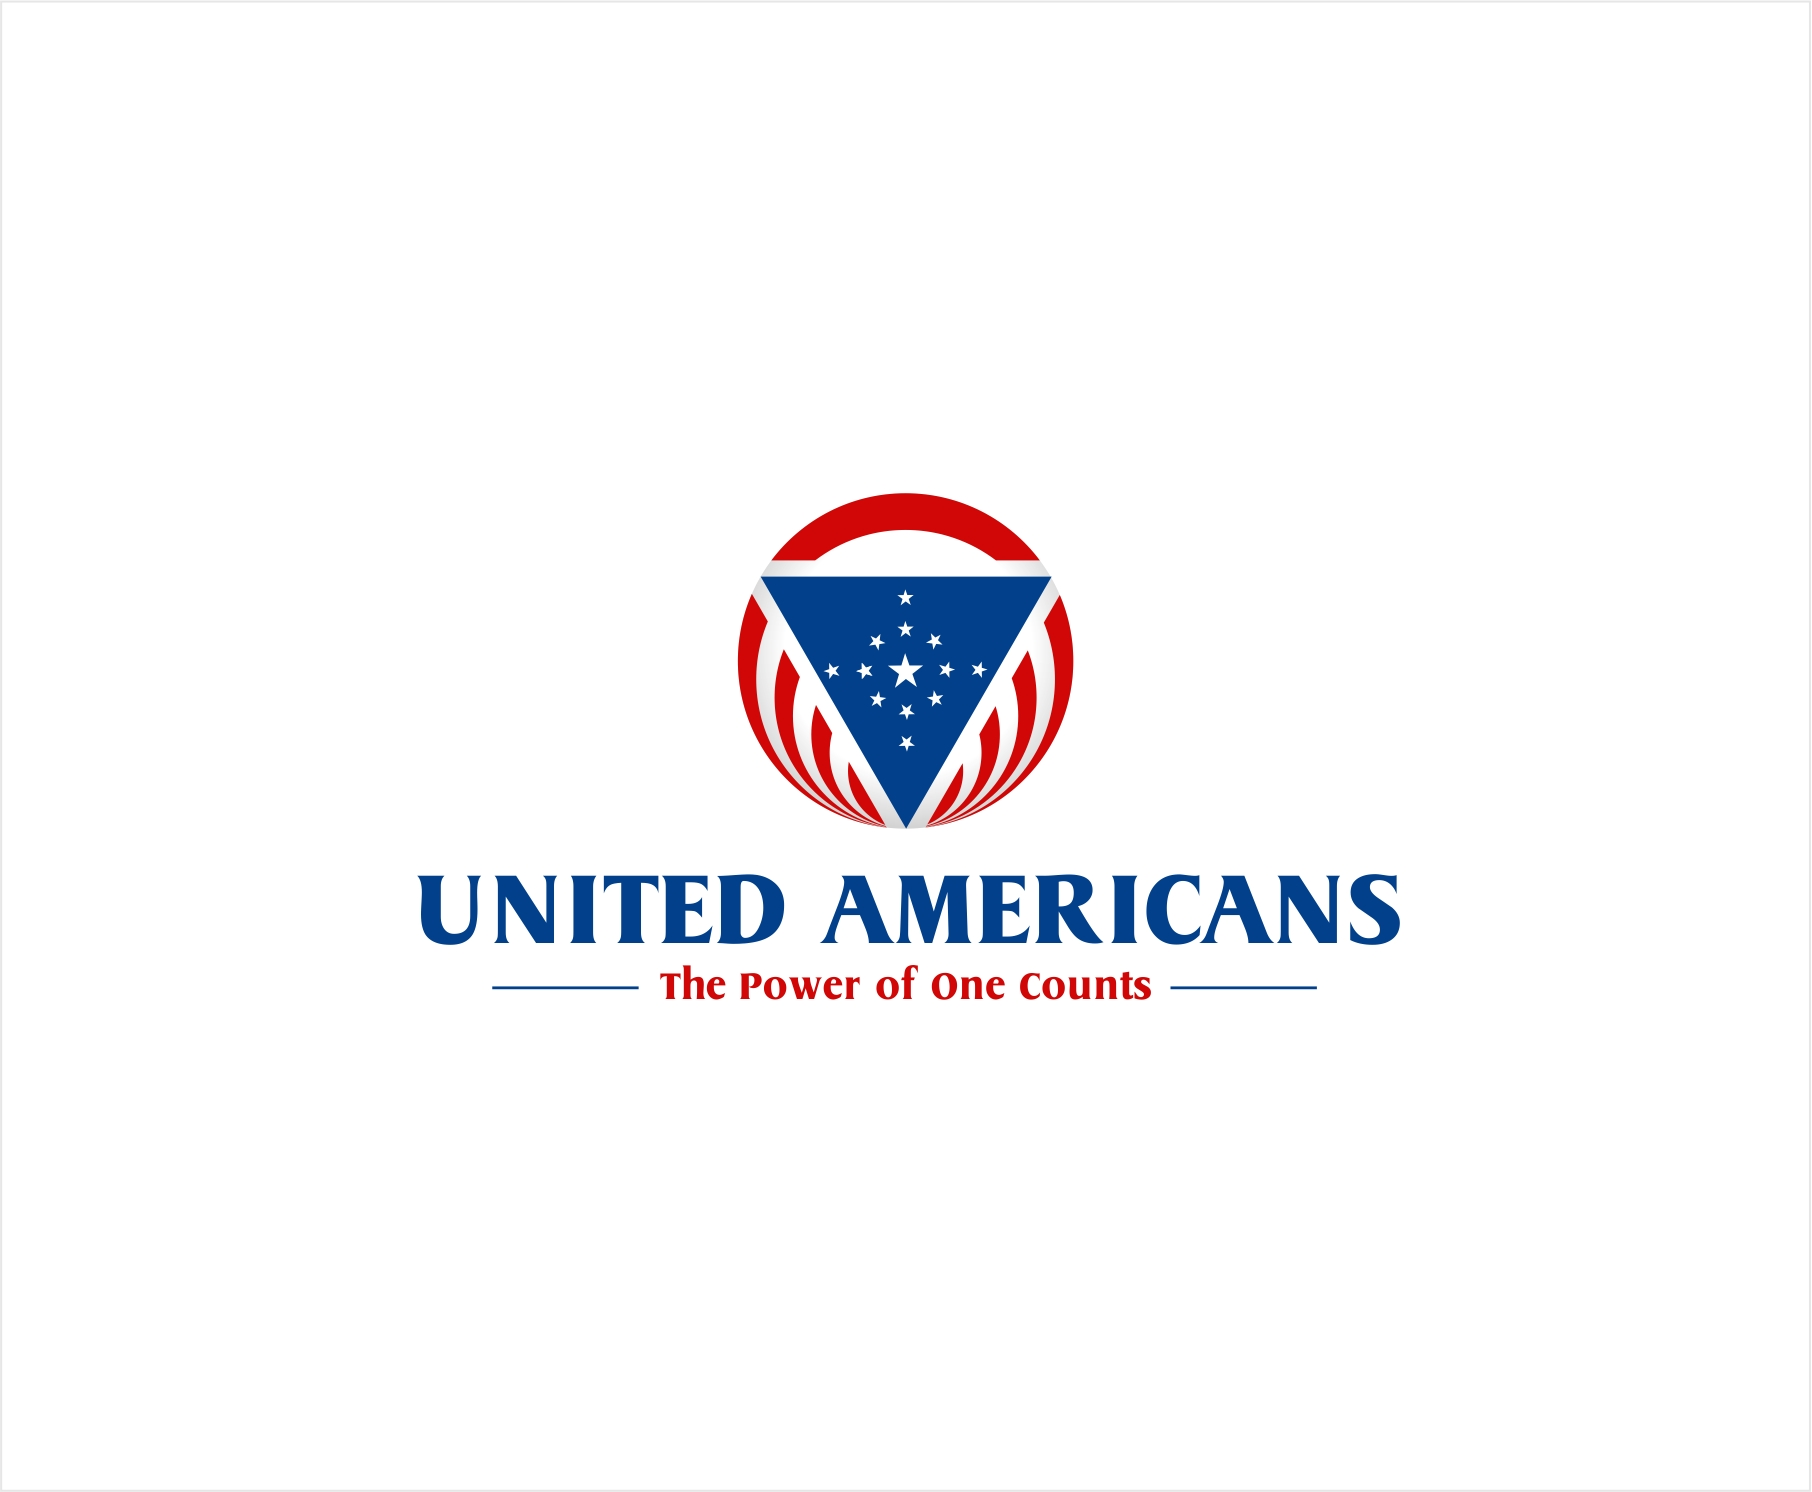 Logo Design by haidu - Entry No. 70 in the Logo Design Contest Creative Logo Design for United Americans.